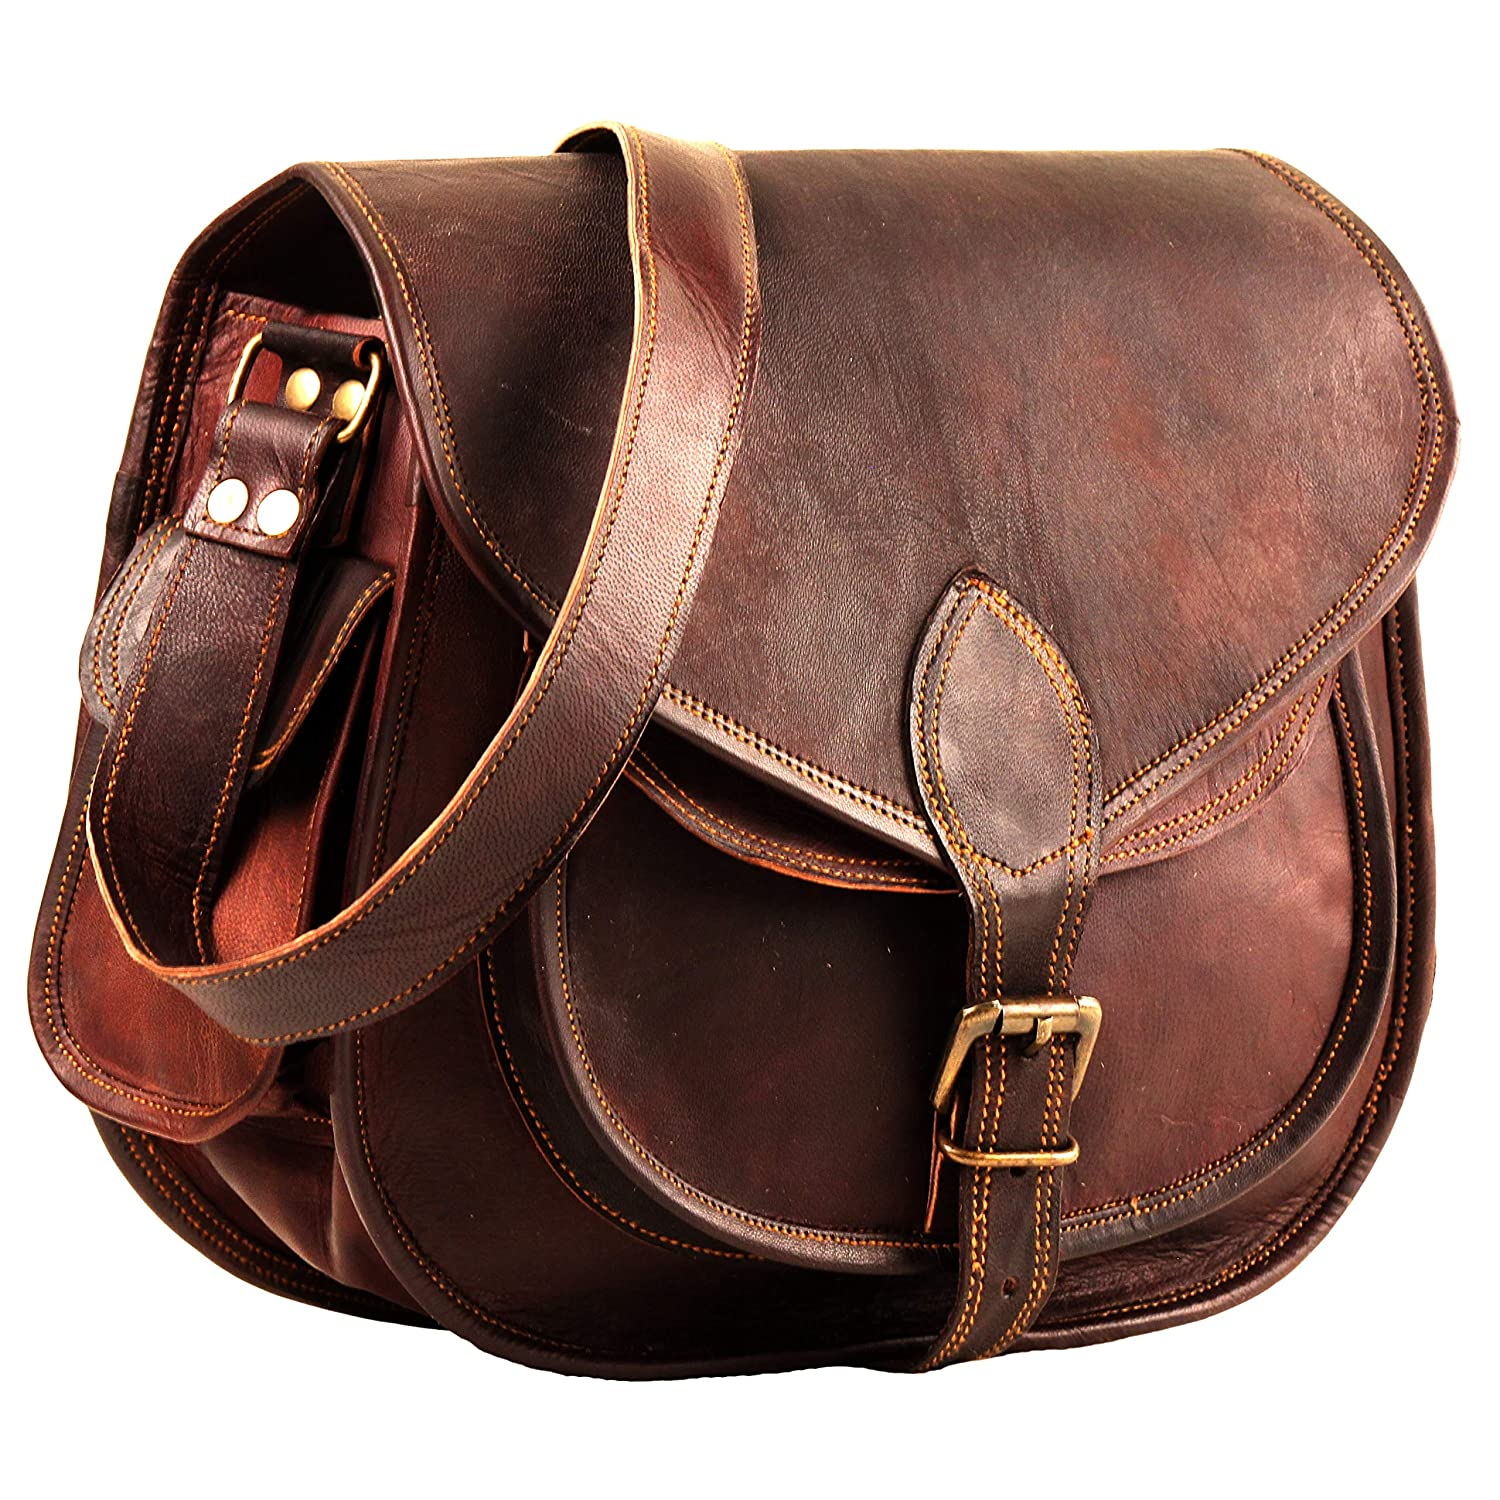 Leather Crossbody Purses Bags for Women | Small Vintage Look Leather Purses and Handbags for Women | Leather Satchel for Women | Diaper Bag for Ladies 11 Inch Handmade_World